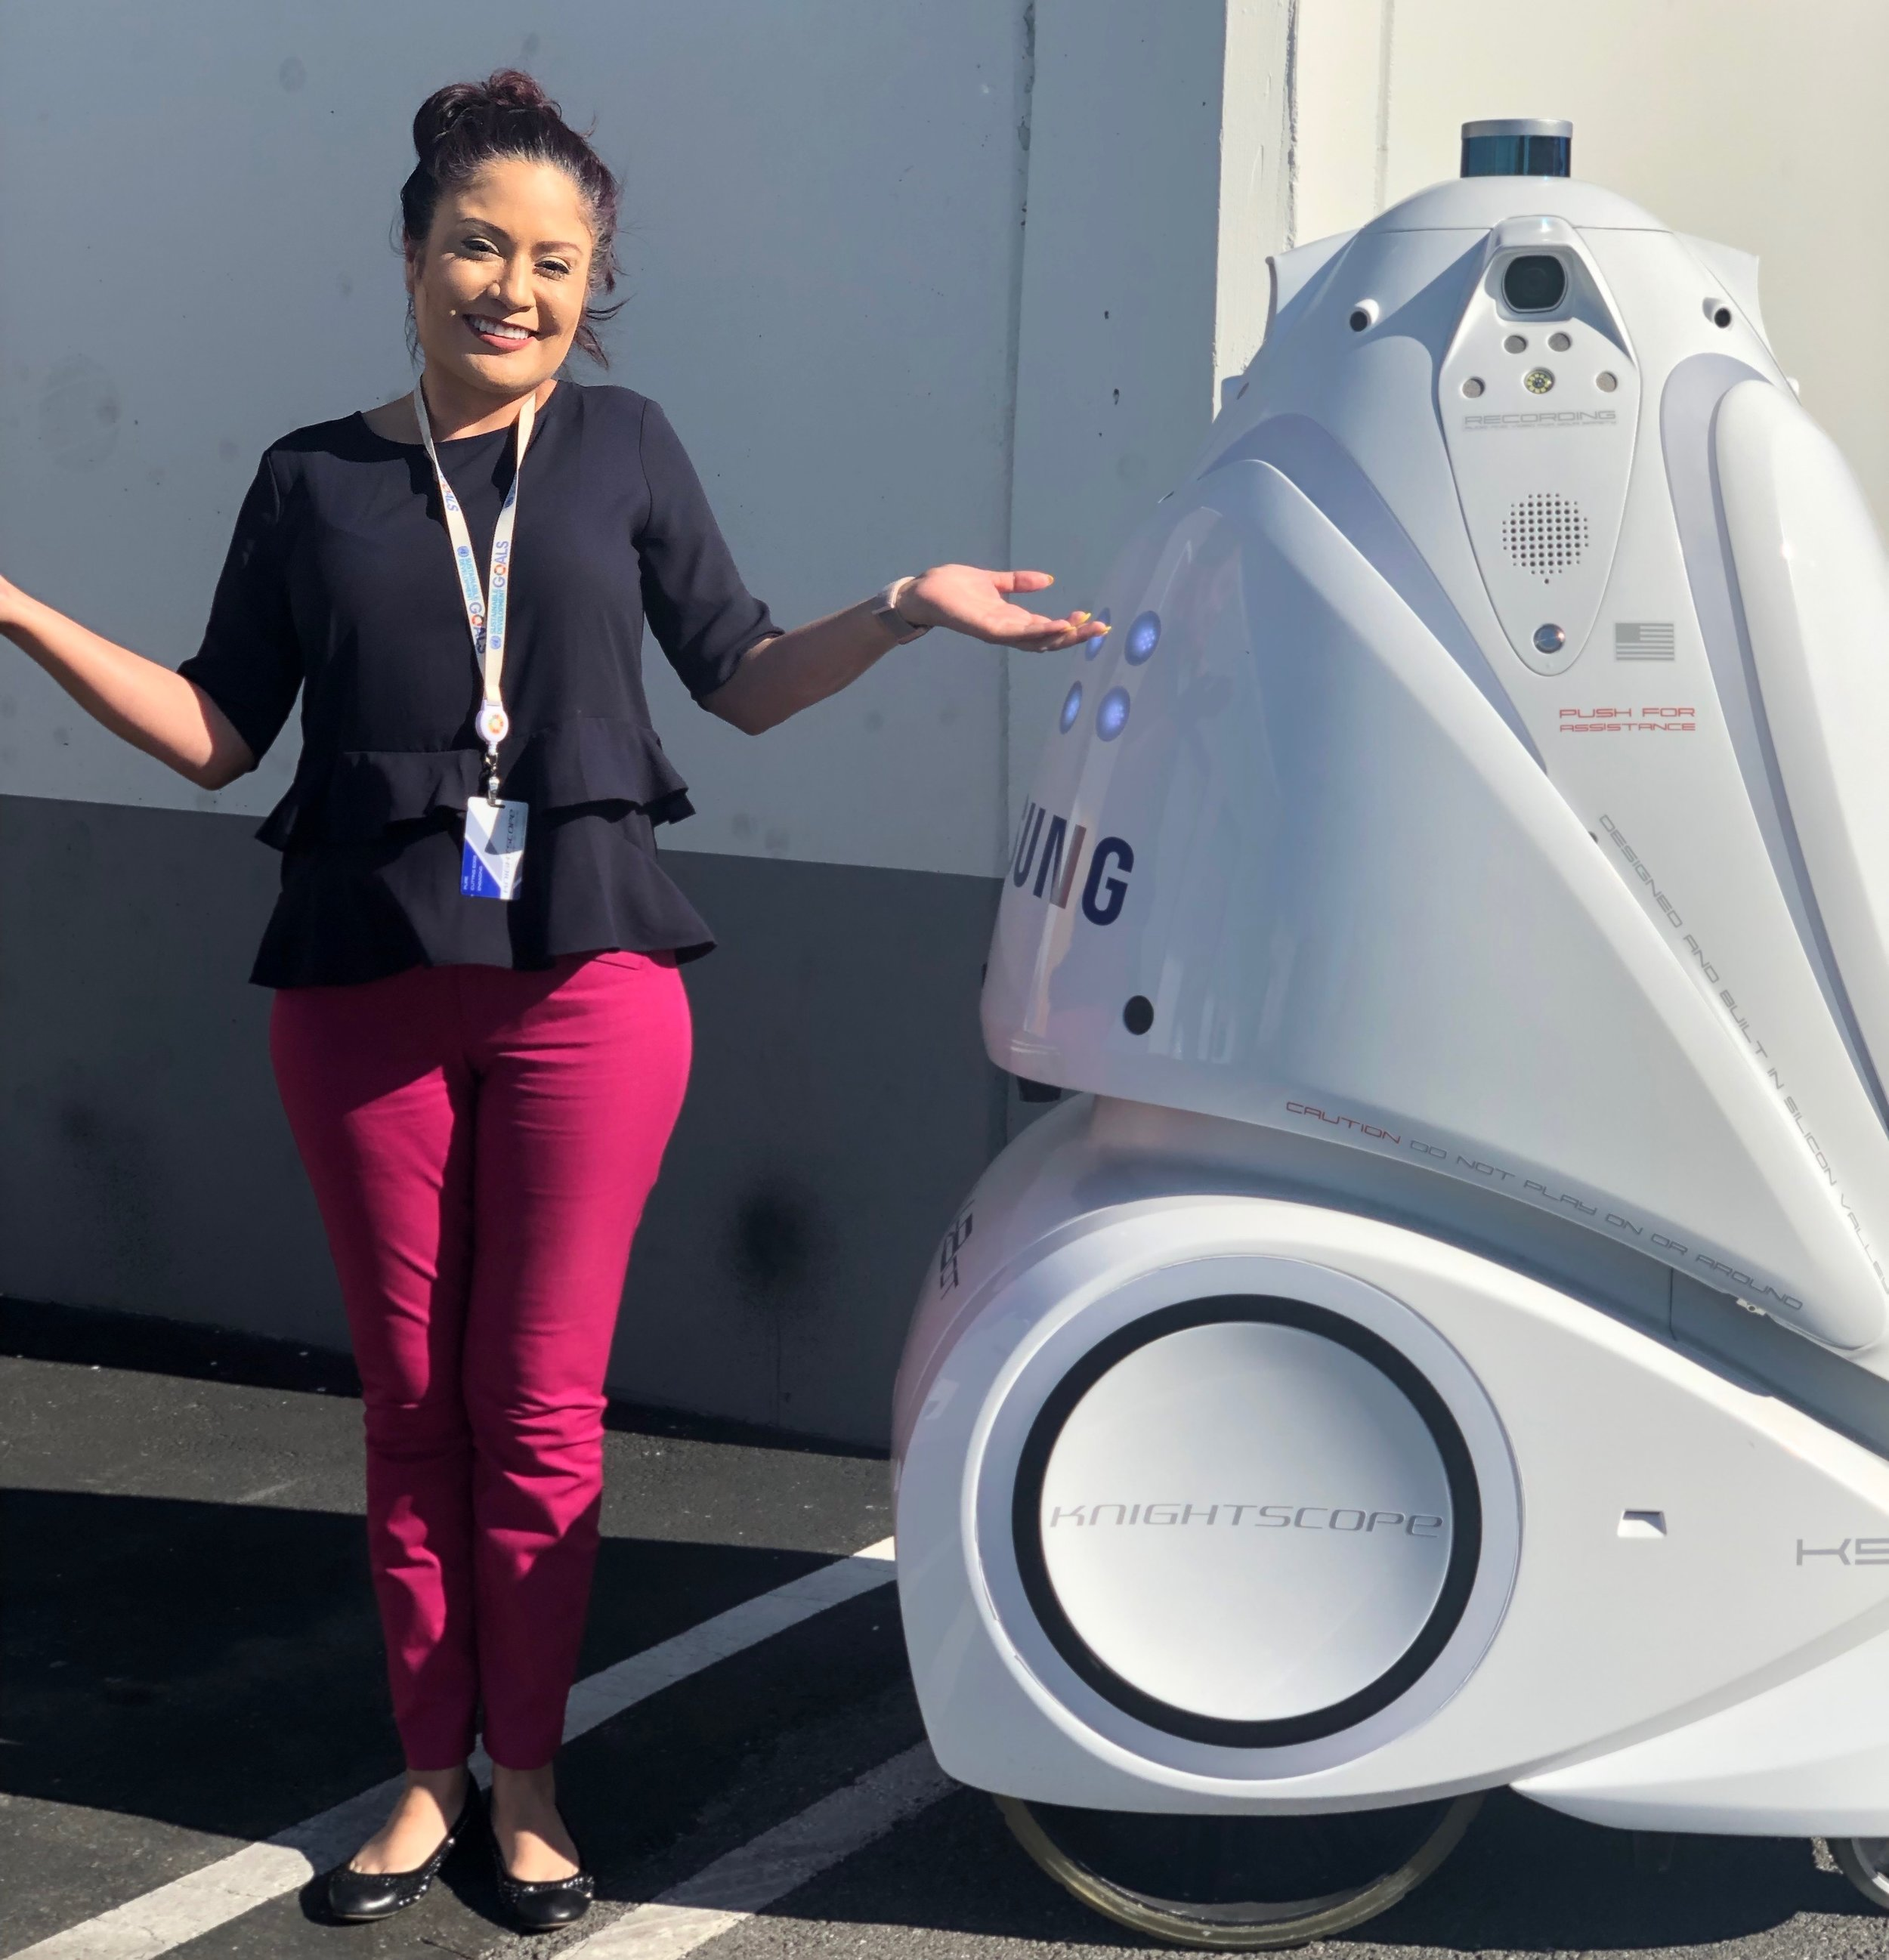 ABOVE: Mercedes Soria, EVP and Chief Intelligence Officer with a 4th Generation Knightscope K5 Autonomous Data Machine (aka #securityrobot)